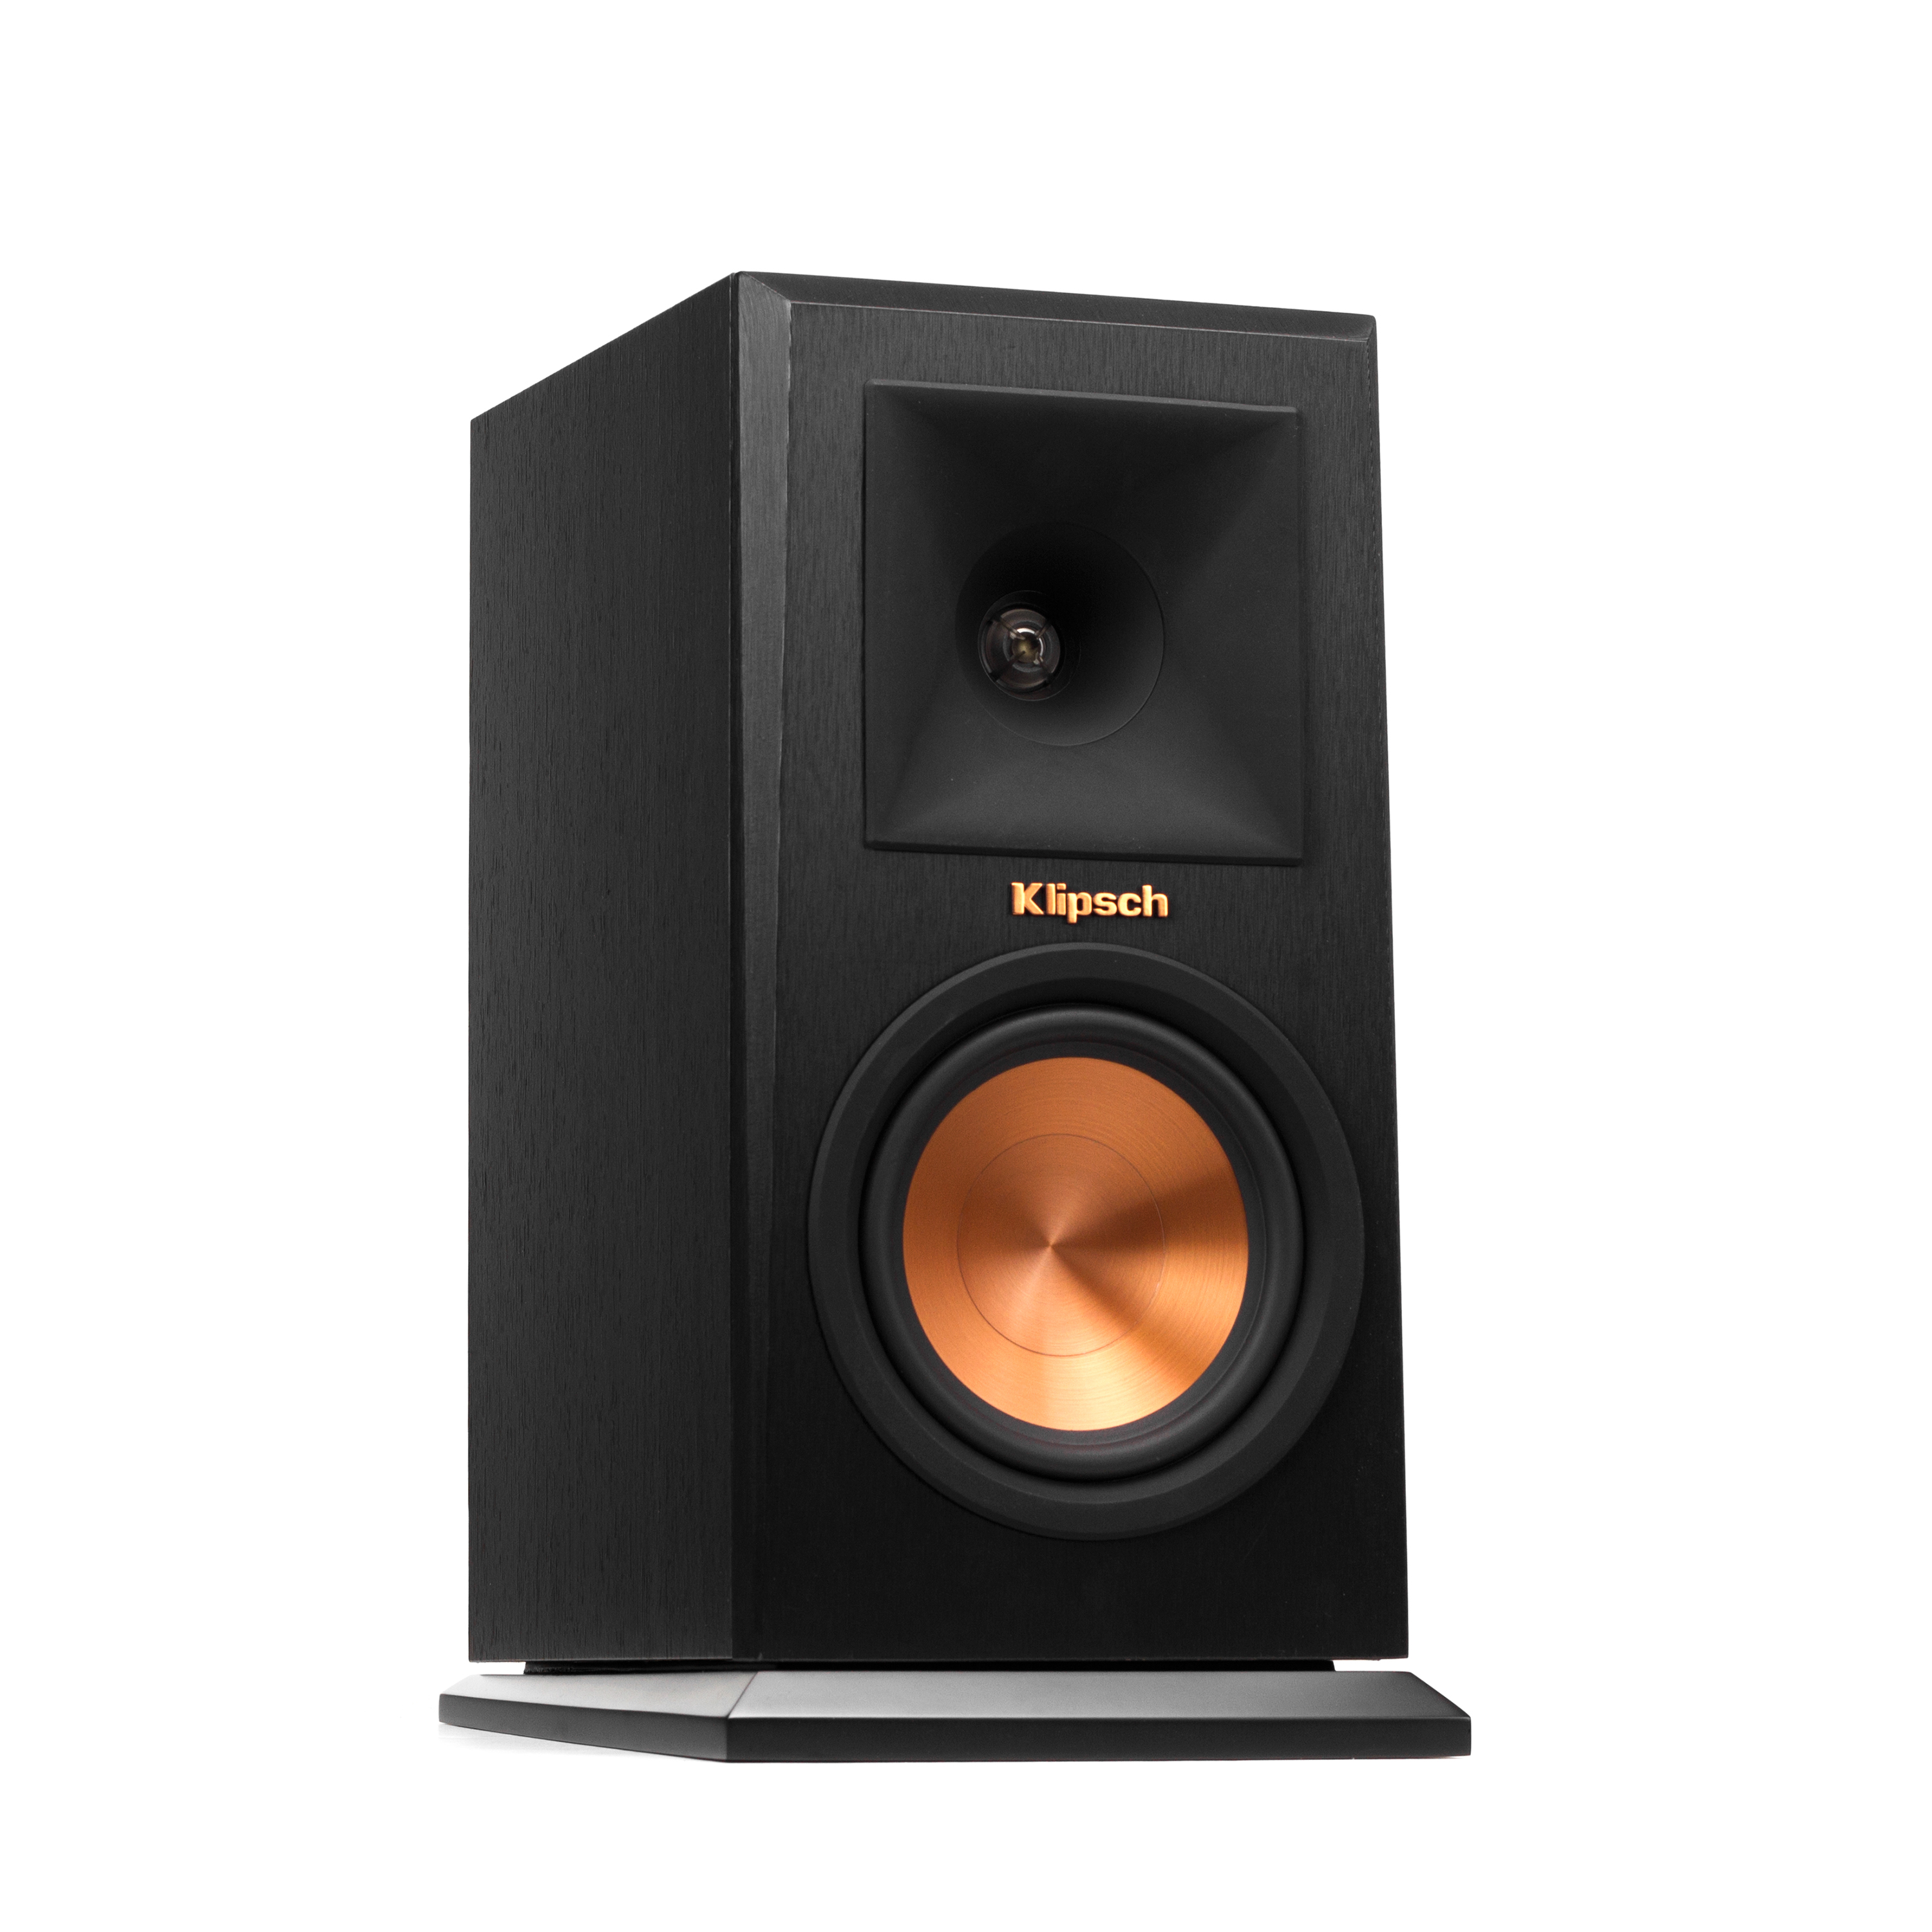 speakers bookshelf klipsch iseo rp crutchfield rgbtcspd p at ebony com f reference premiere